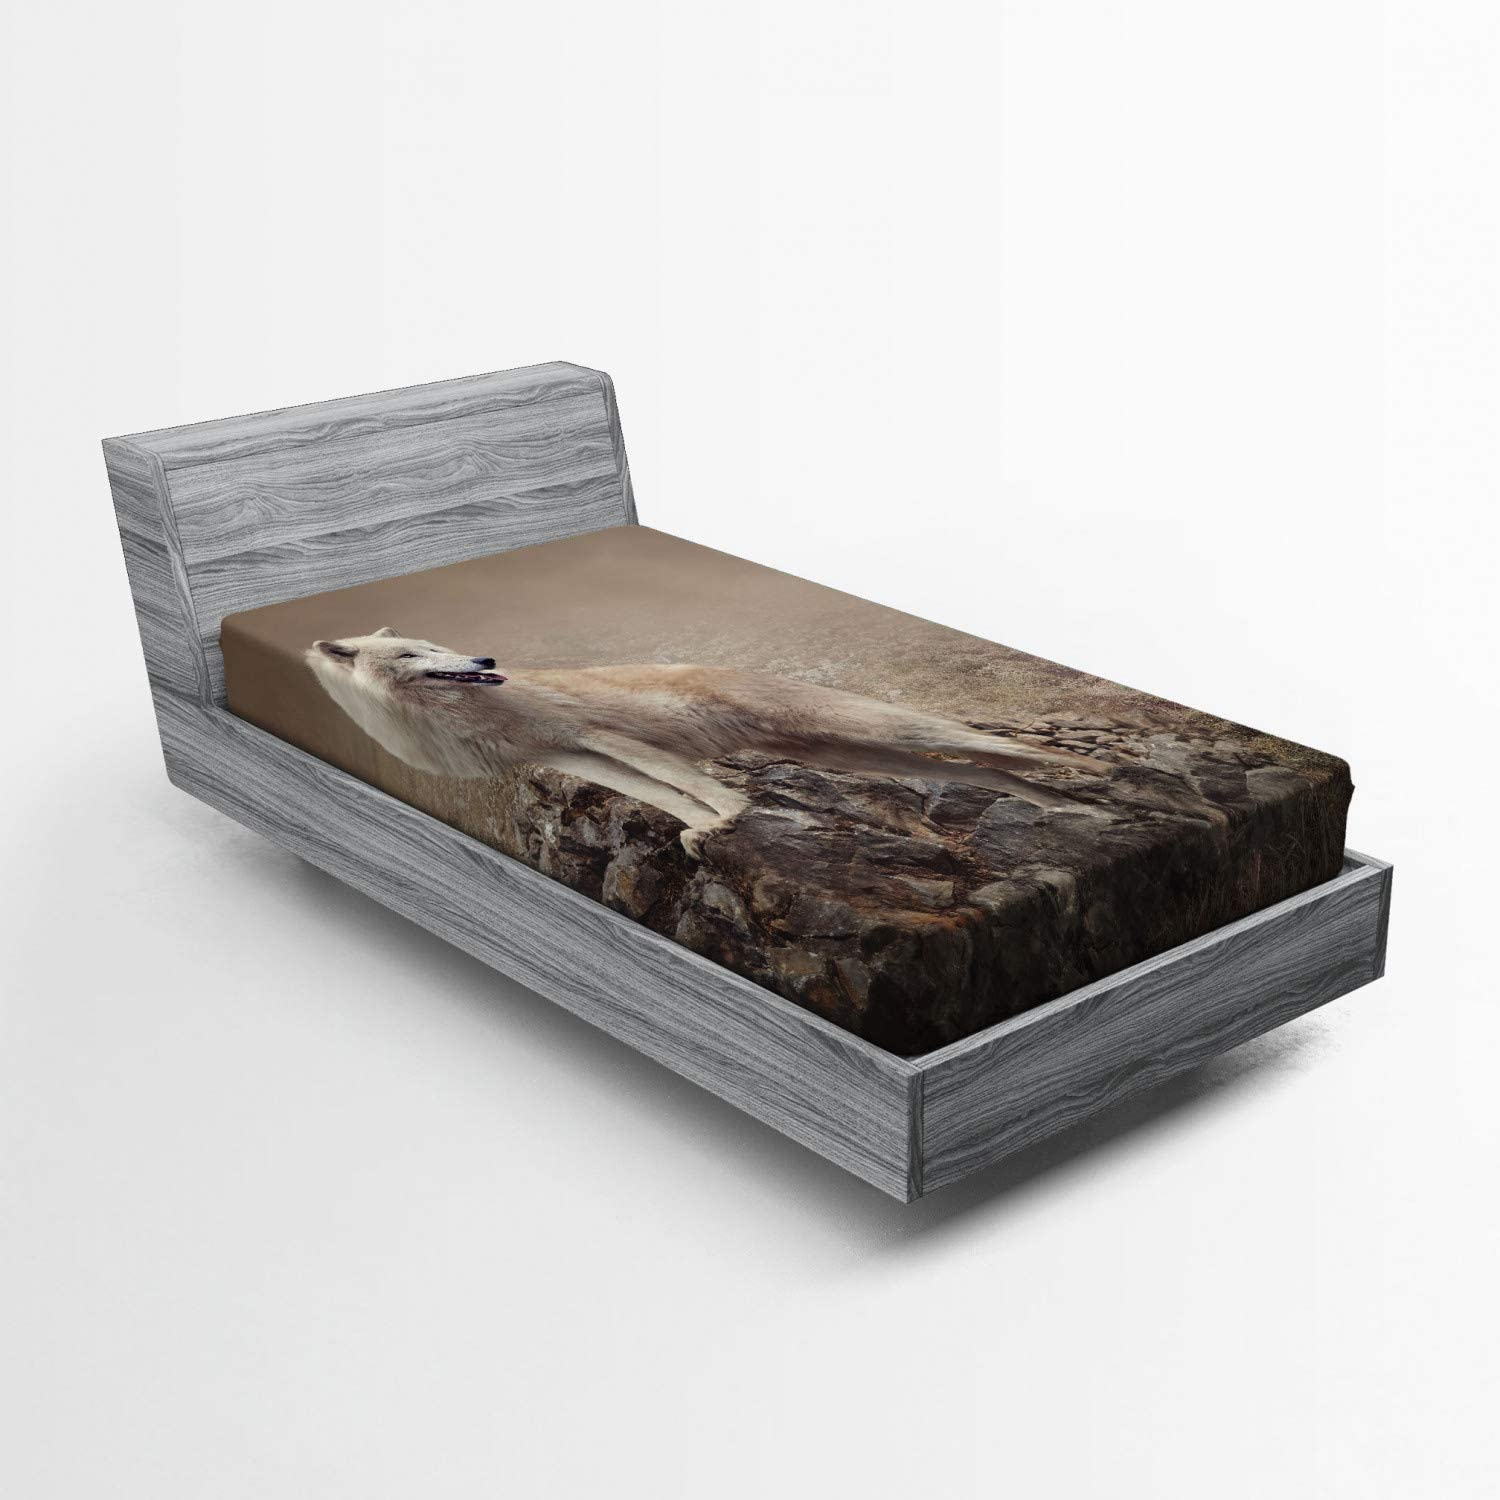 Ambesonne Animal Fitted Sheet, White Wolf on Rocks at The Night Hazy Misty Weather Wildlife Nature Scenery Print, Soft Decorative Fabric Bedding All-Round Elastic Pocket, Twin Size, Brown Beige